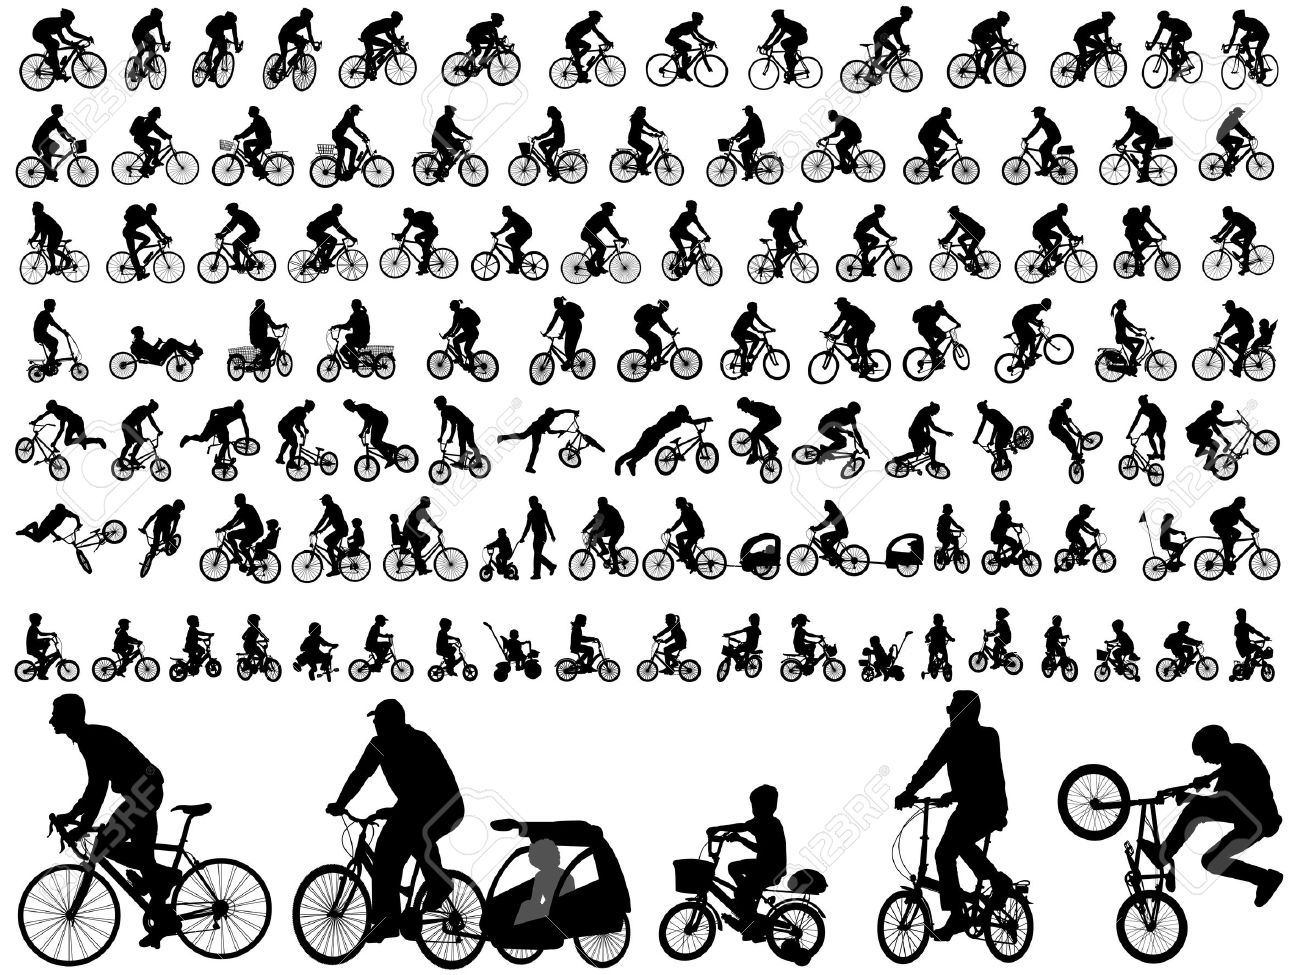 106 high quality bicyclists silhouettes - 36306564